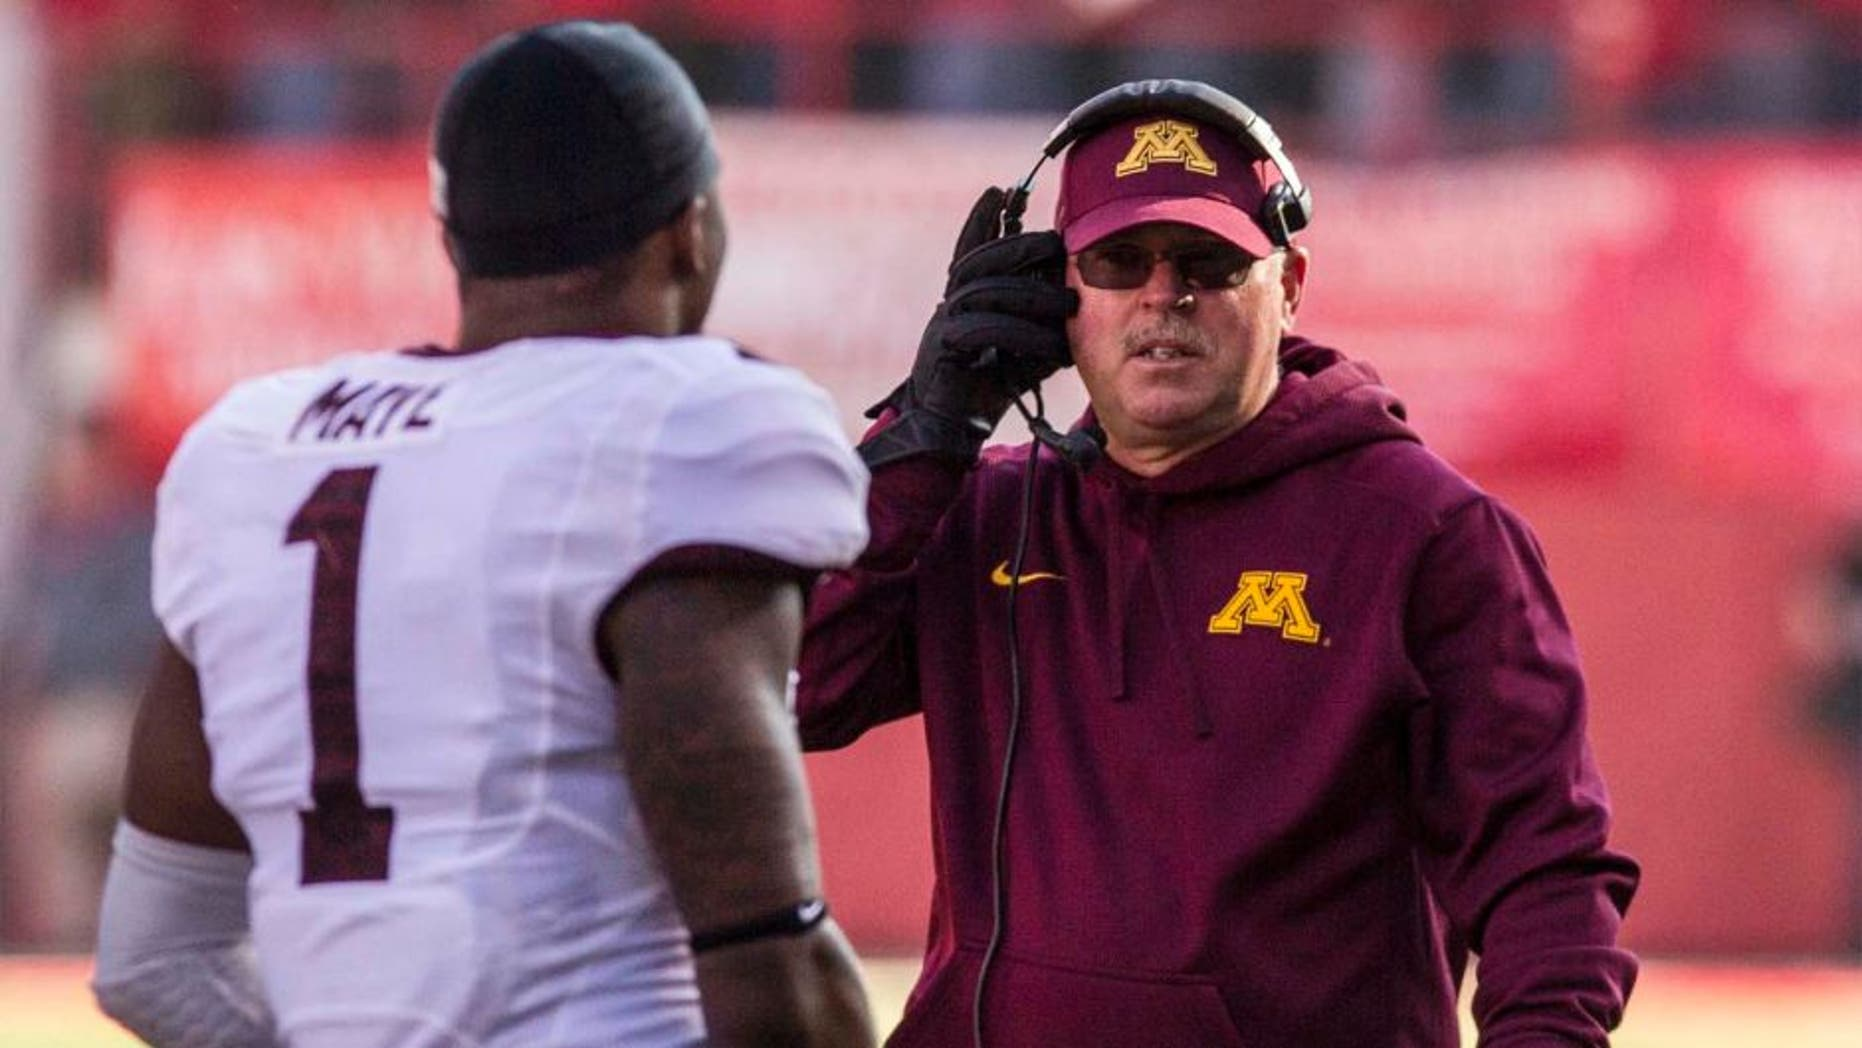 Minnesota Golden Gophers head coach Jerry Kill (right) talks to receiver KJ Maye during the second half of Minnesota's 28-24 win against the Nebraska Cornhuskers.